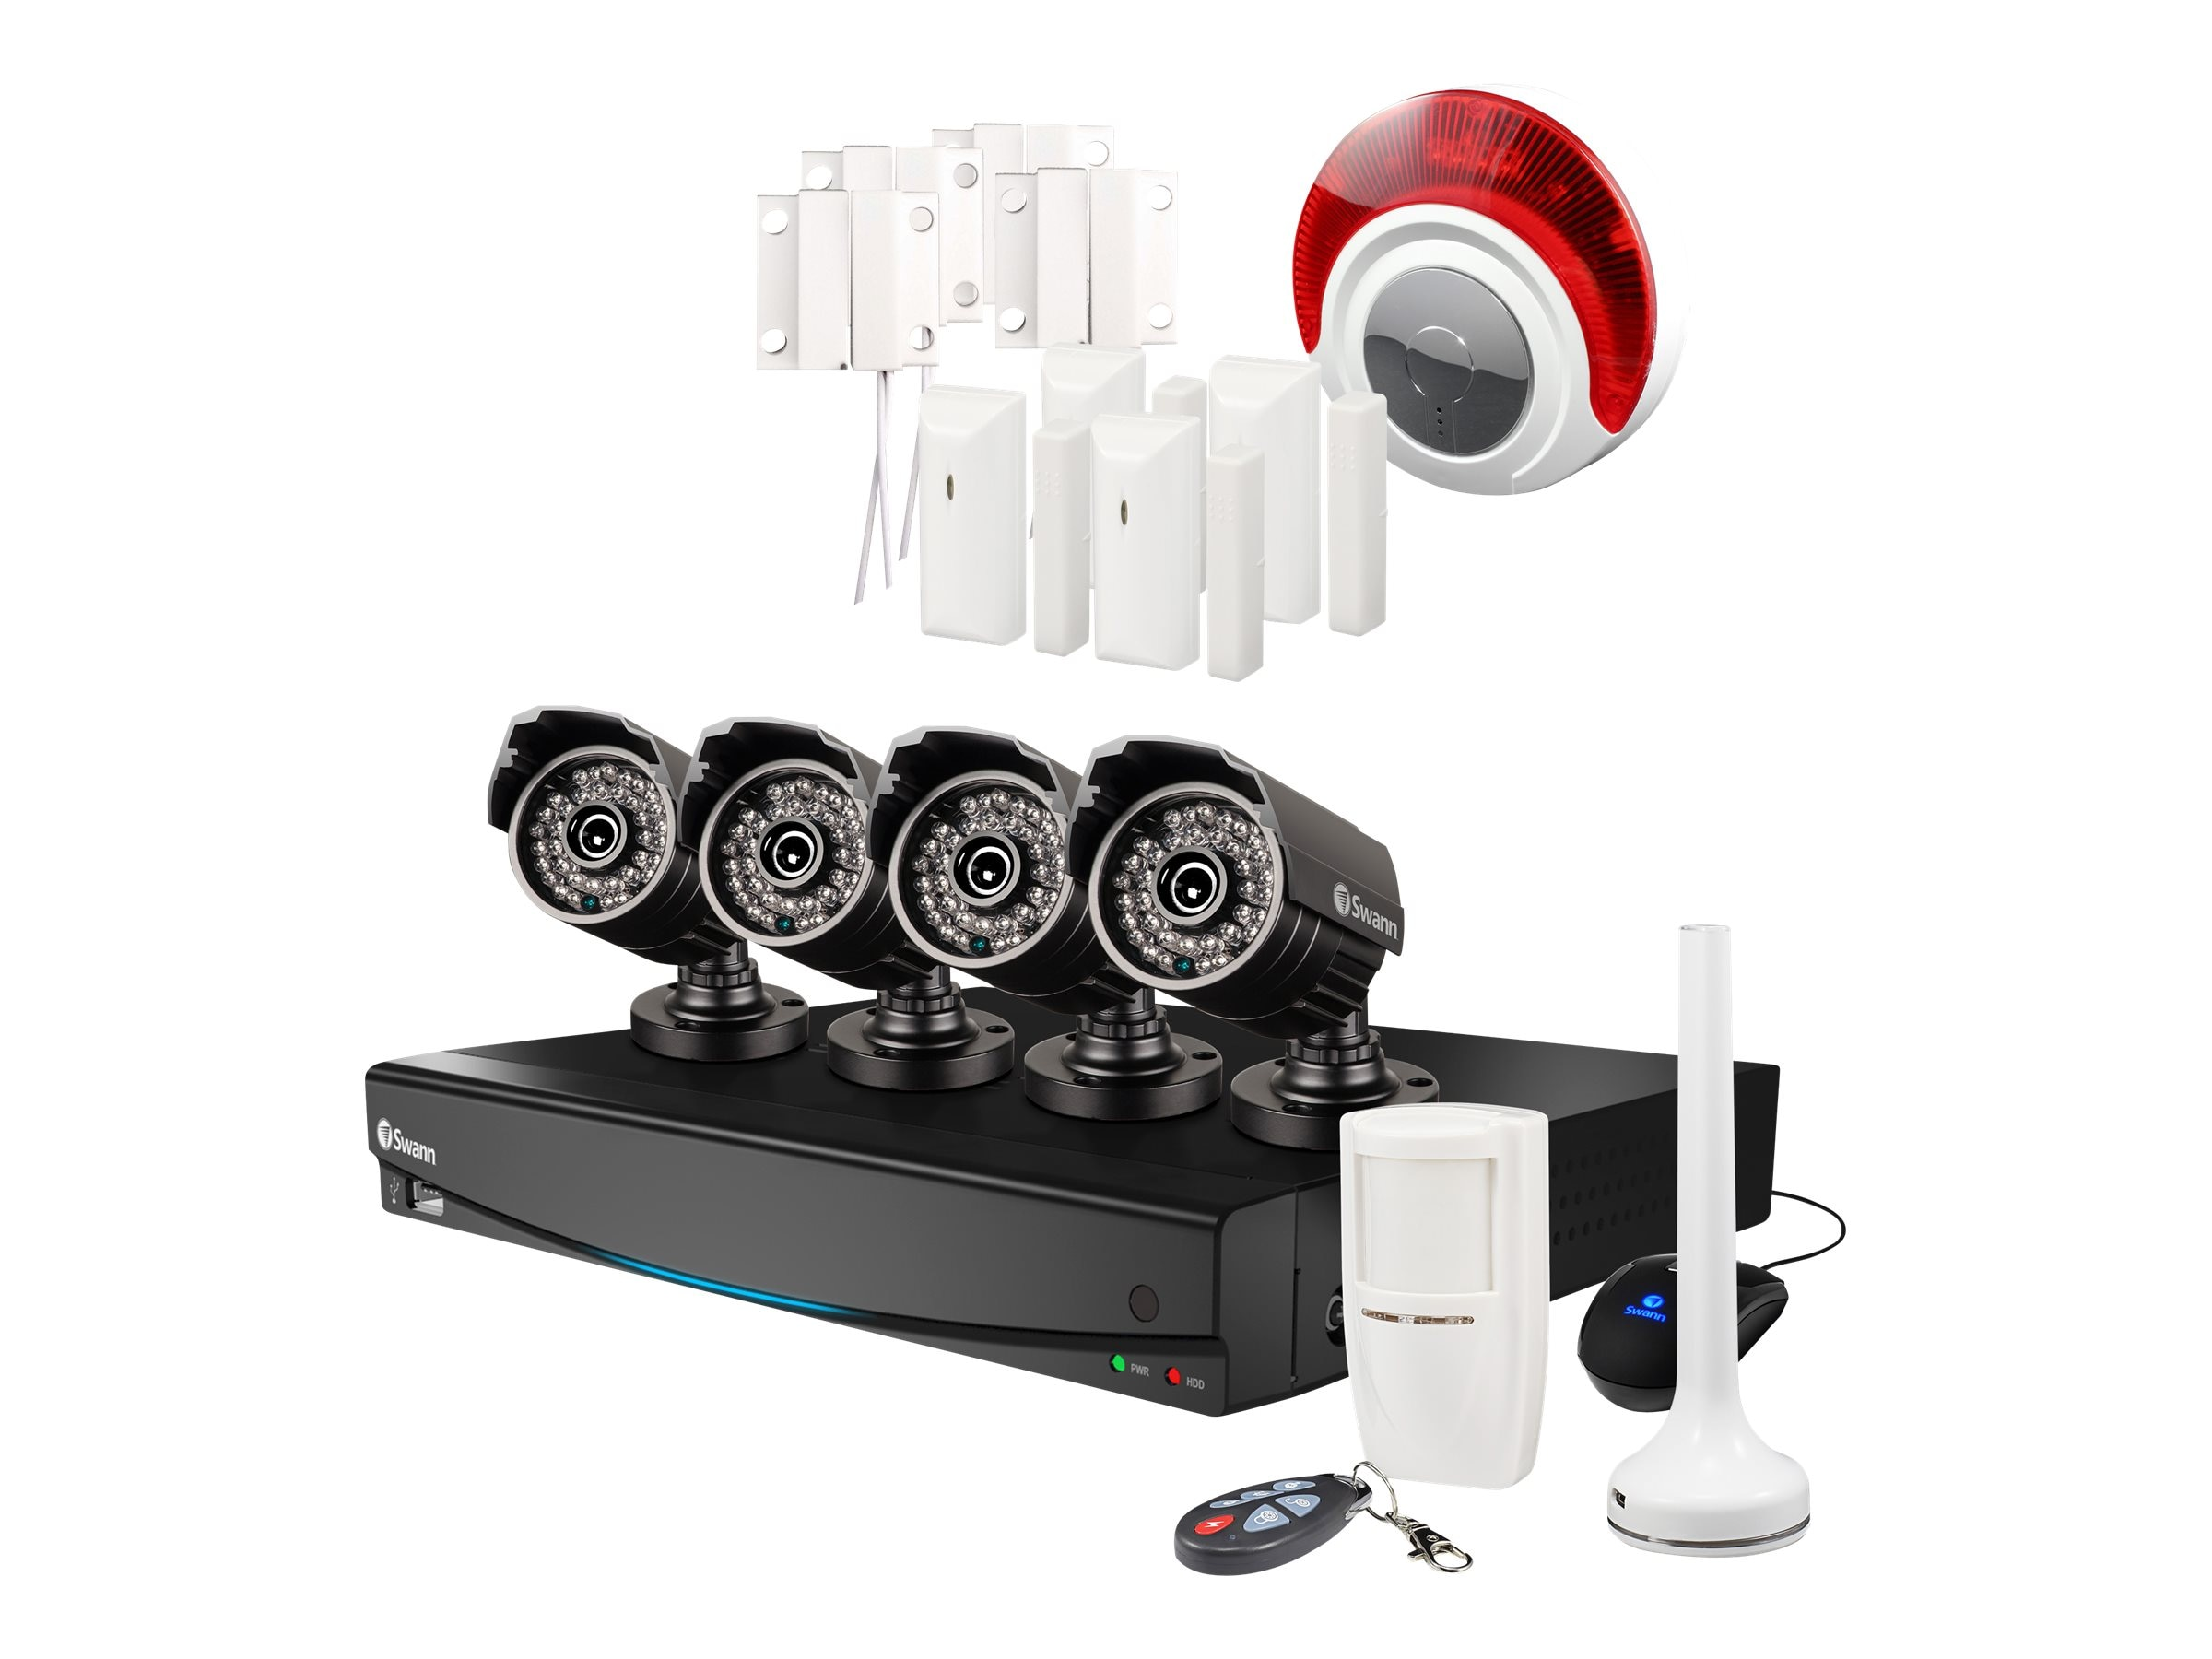 Swann 8-Channel 960H DVR with 4x 720TVL Cameras, Alarm Sensors, Siren, SWVAK-834254D-US, 30948901, Video Capture Hardware